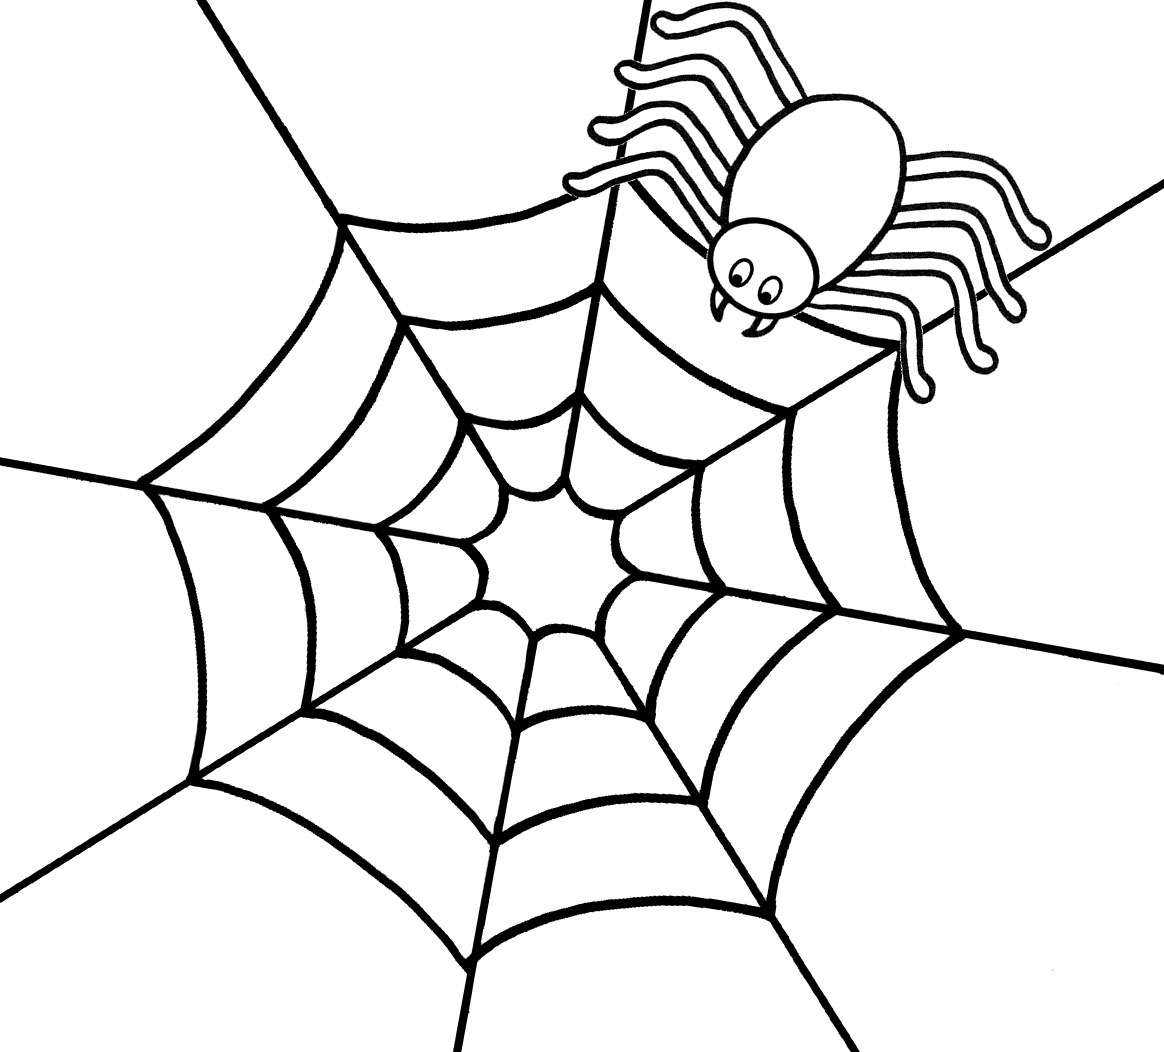 Spider Coloring Pages - Printable Spider Coloring Pages